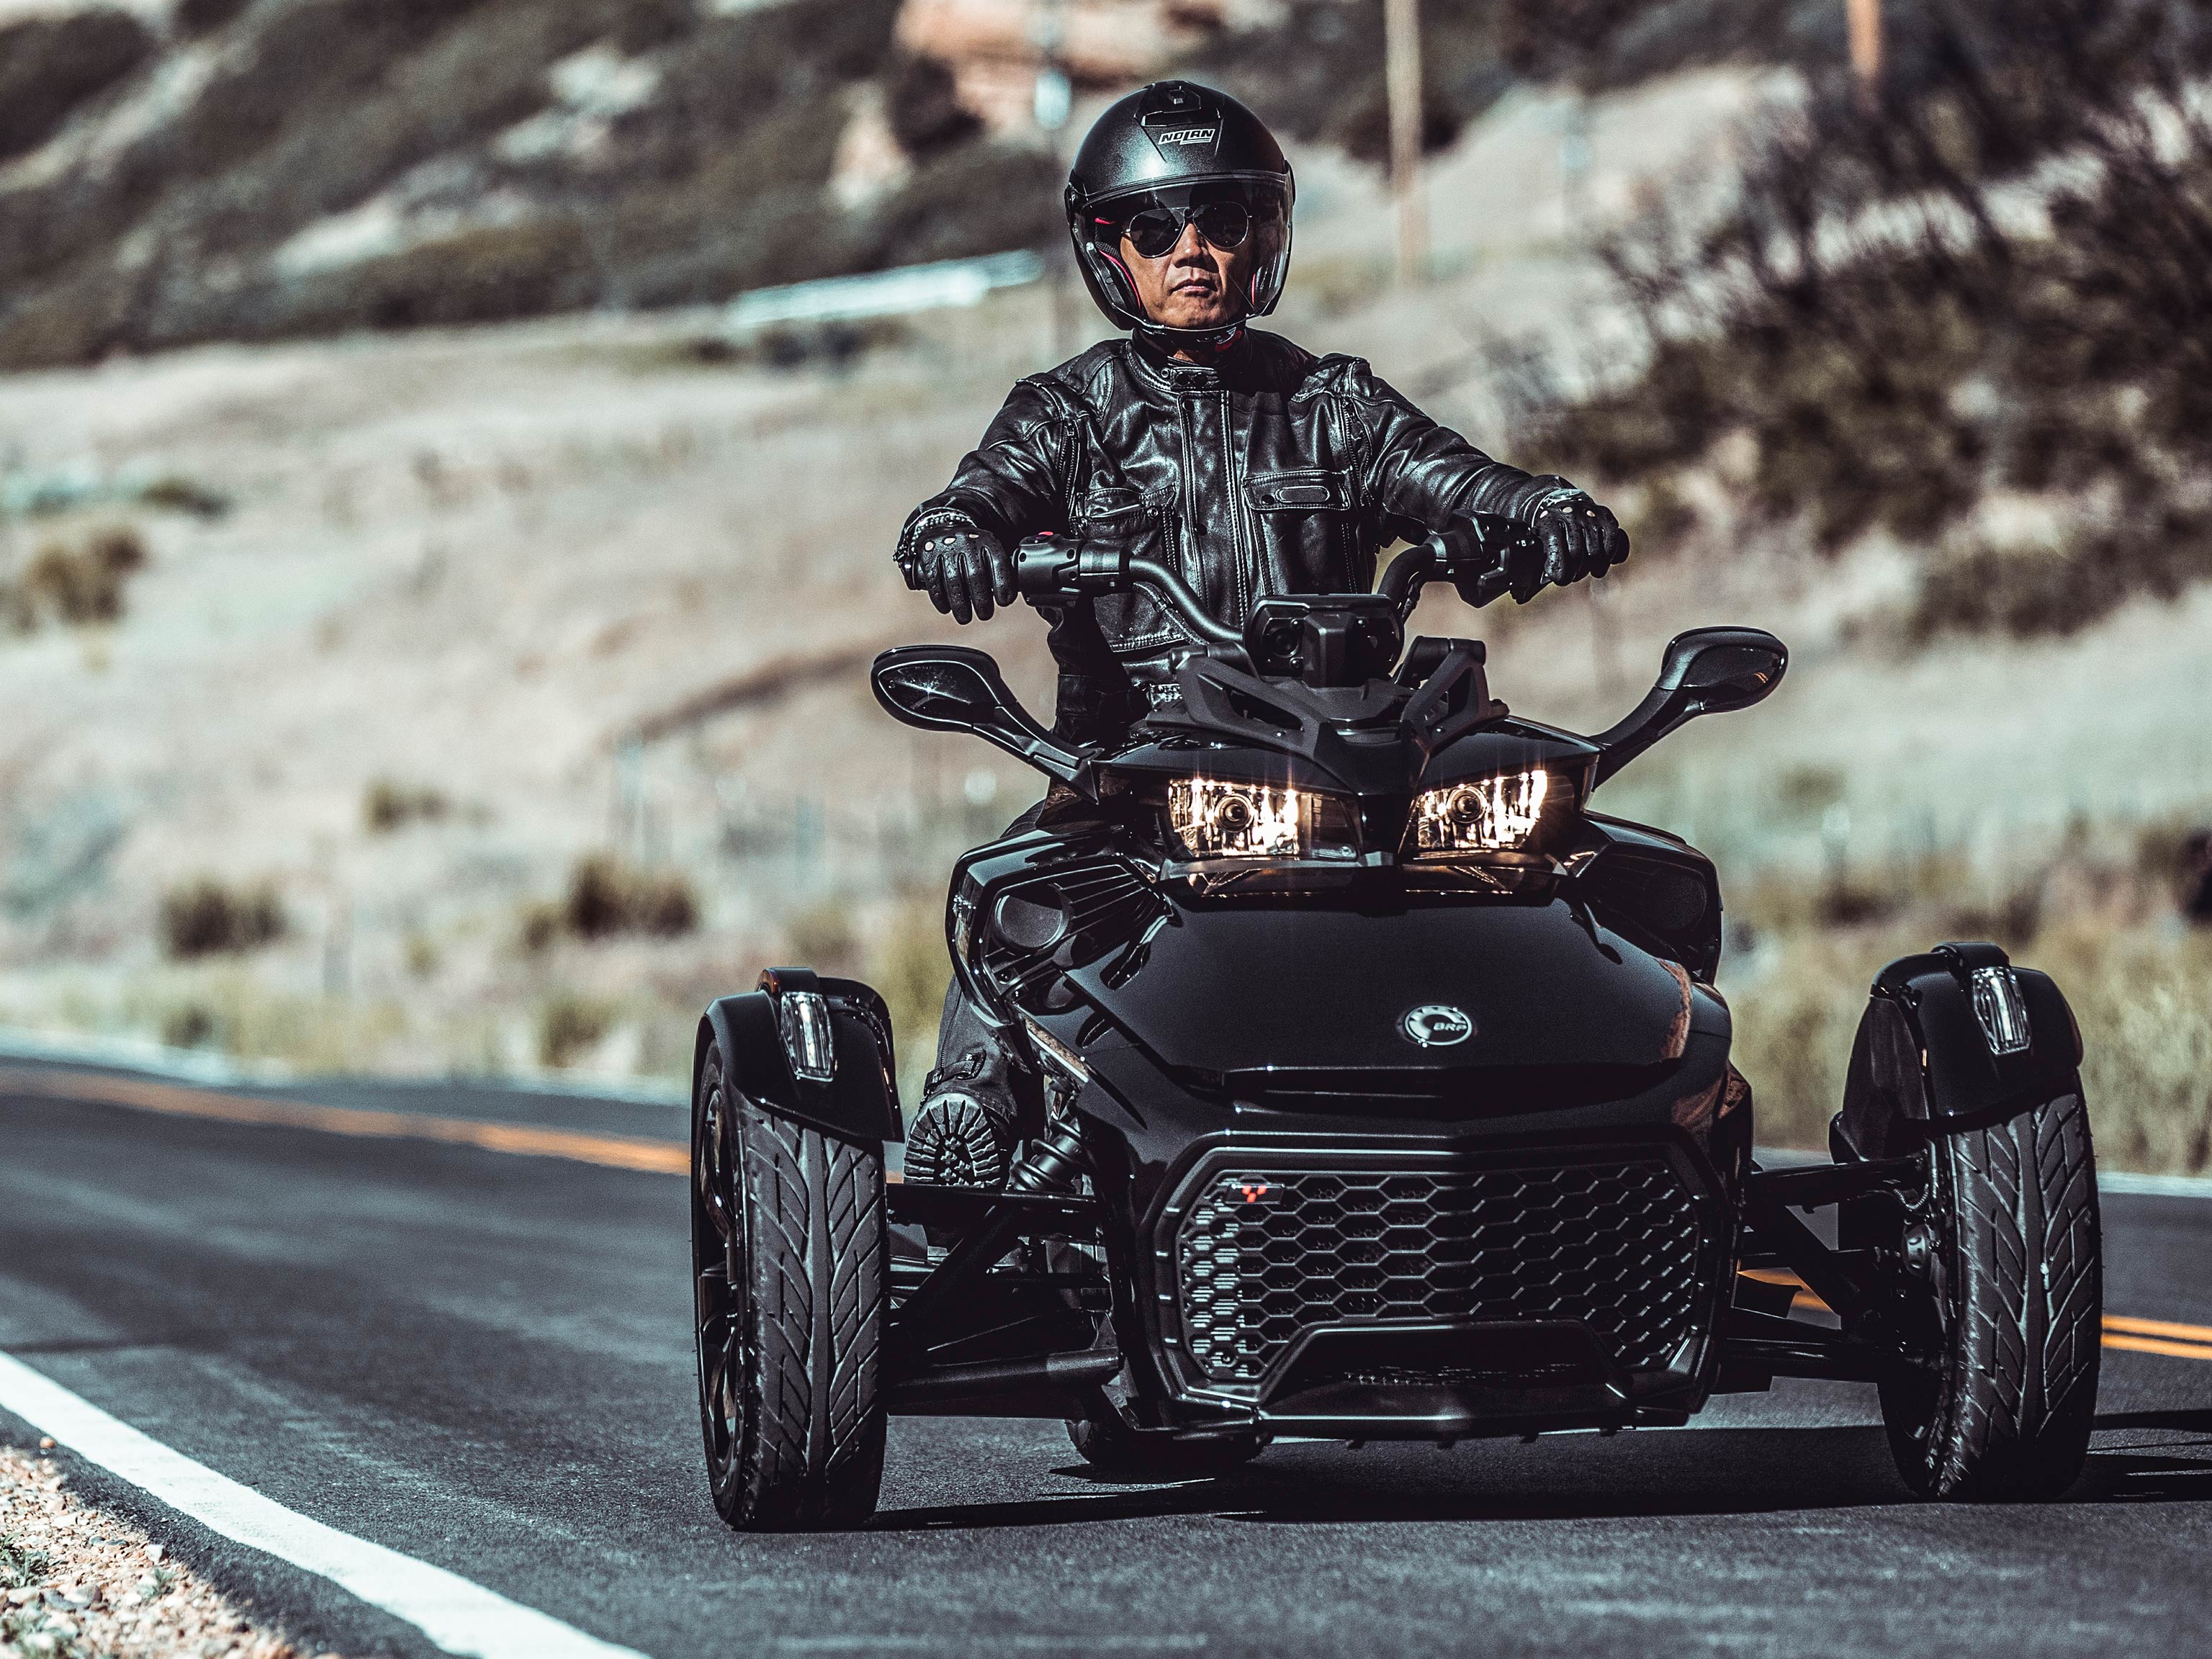 A man riding his Can-Am Spyder along the open desert road